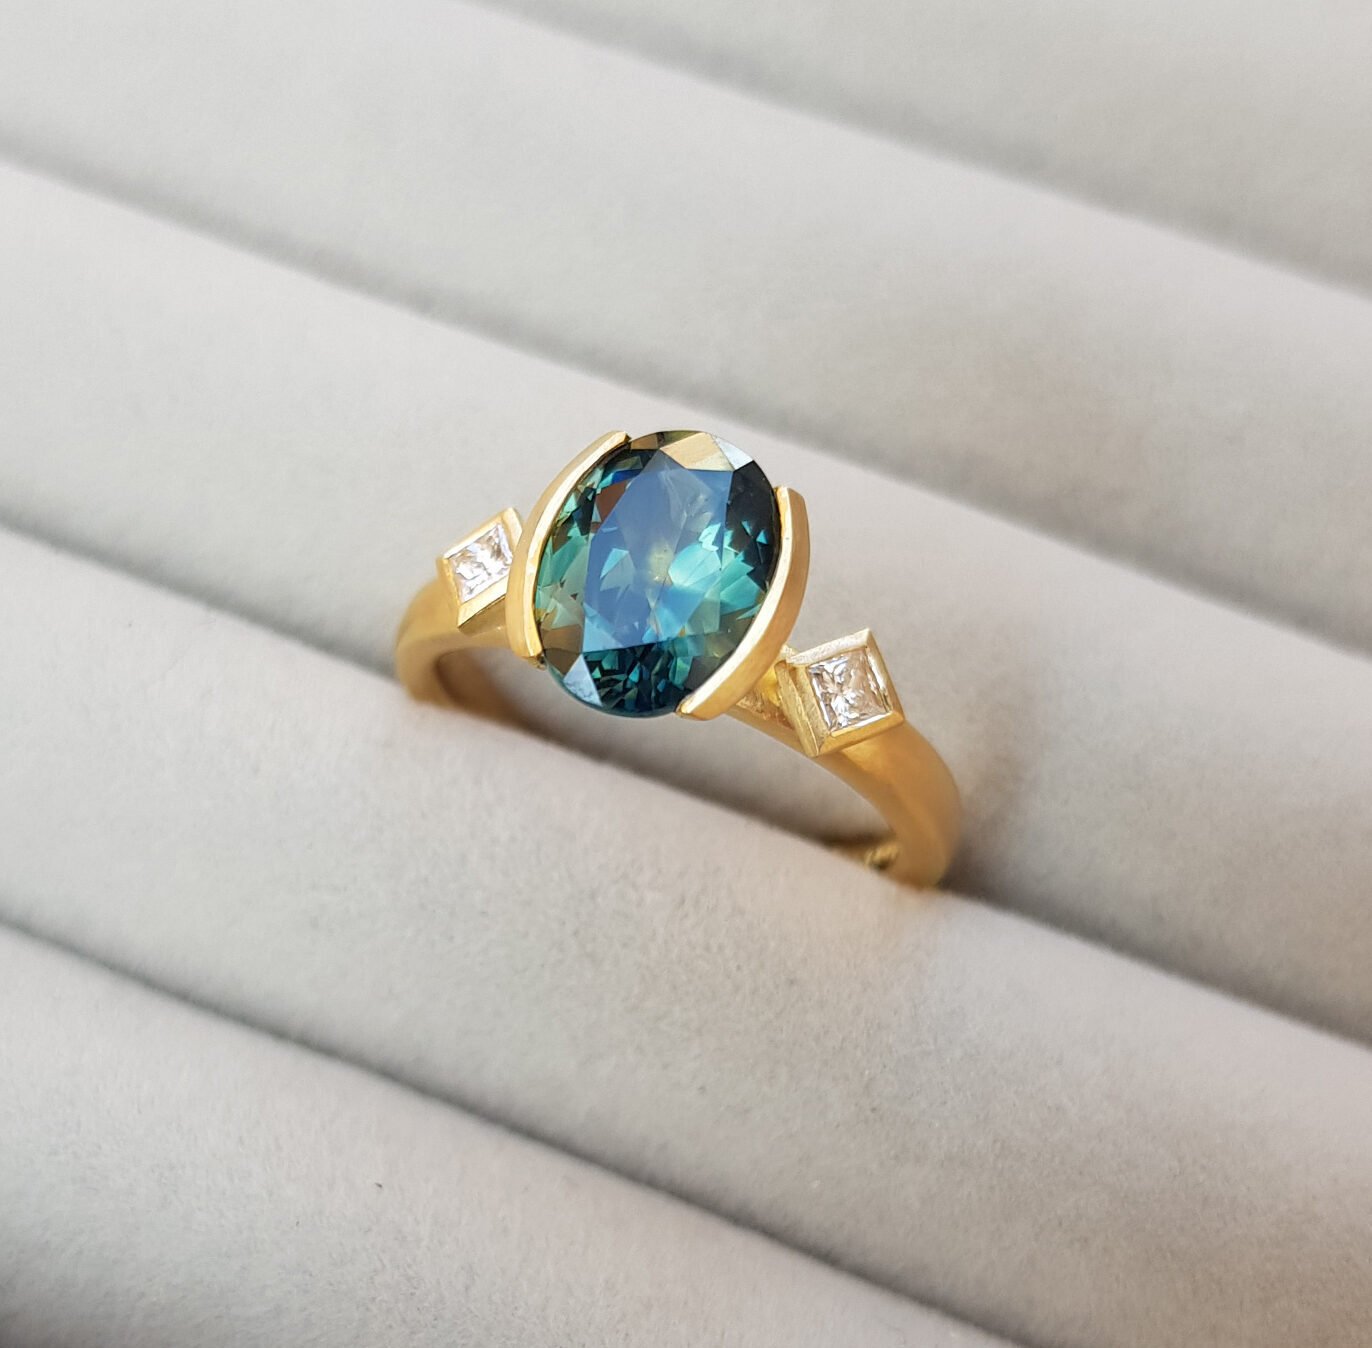 Bespoke ethical engagement ring with large teal blue, parti-sapphire and two diamonds flanked by two diamonds on a gold band in a grey ring tray.